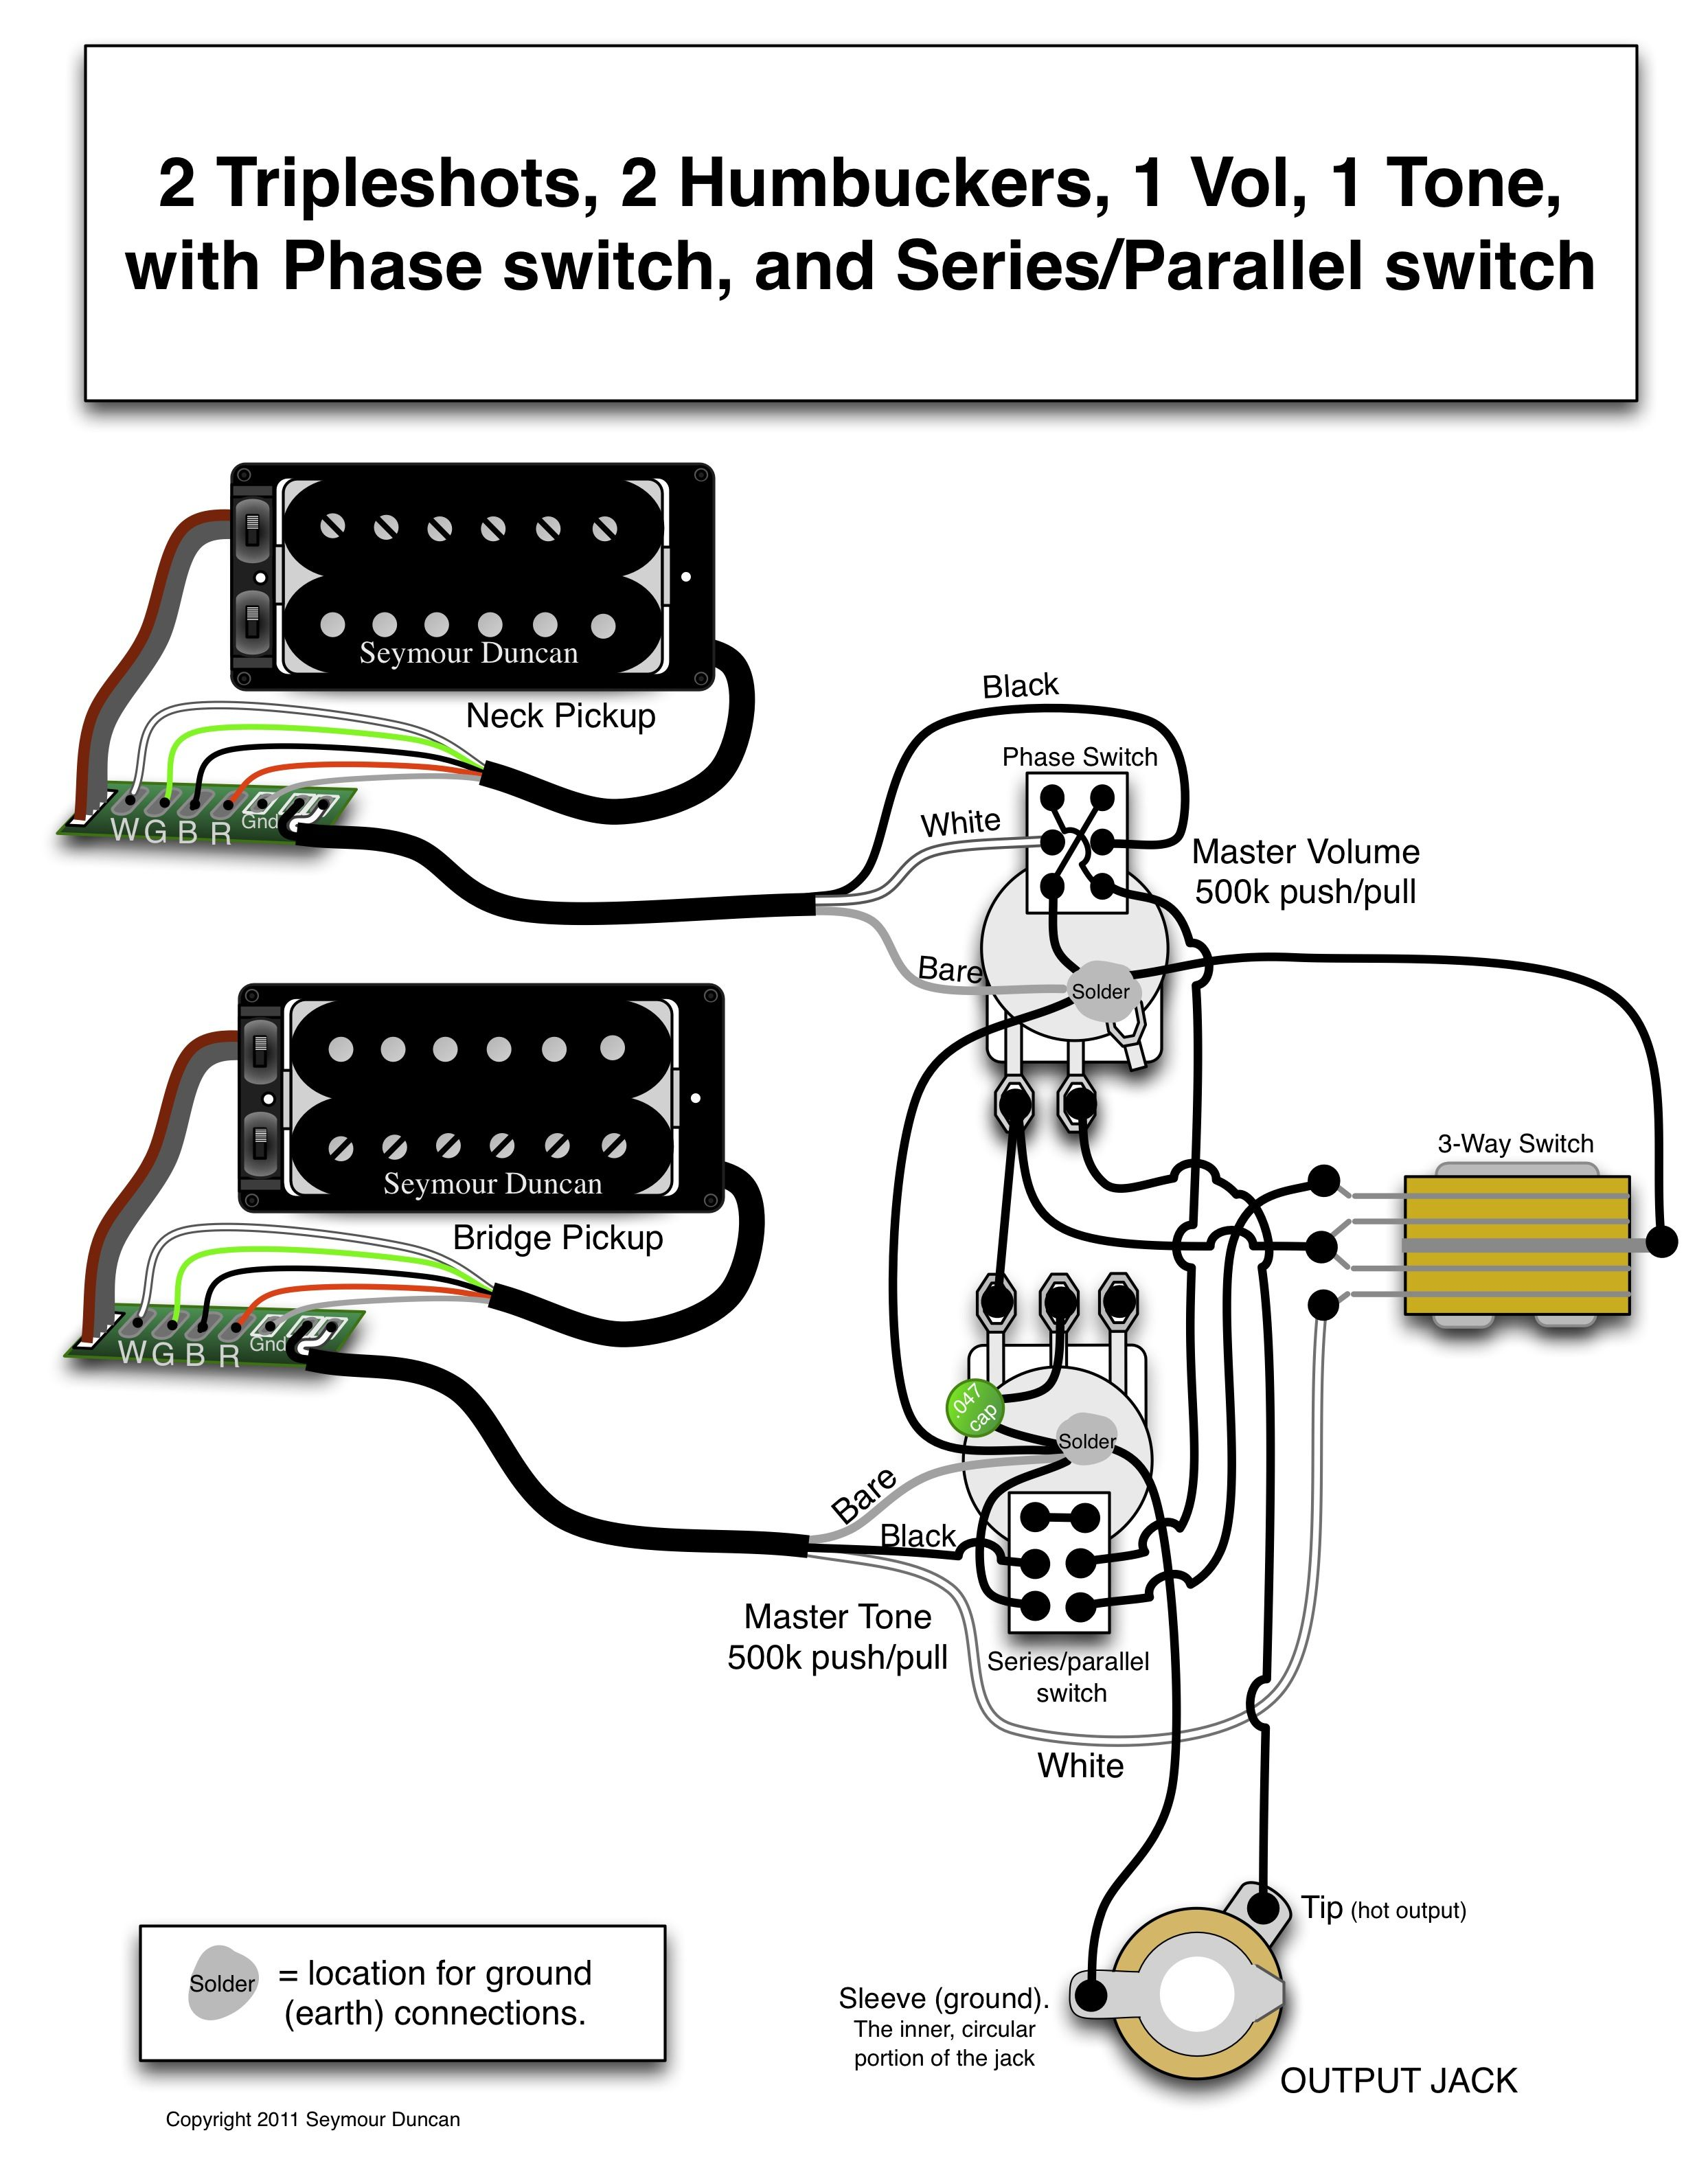 11e7a4ce932088841833425d14ebd2ea seymour duncan wiring diagram 2 triple shots, 2 humbuckers, 1 p rails wiring diagram at panicattacktreatment.co